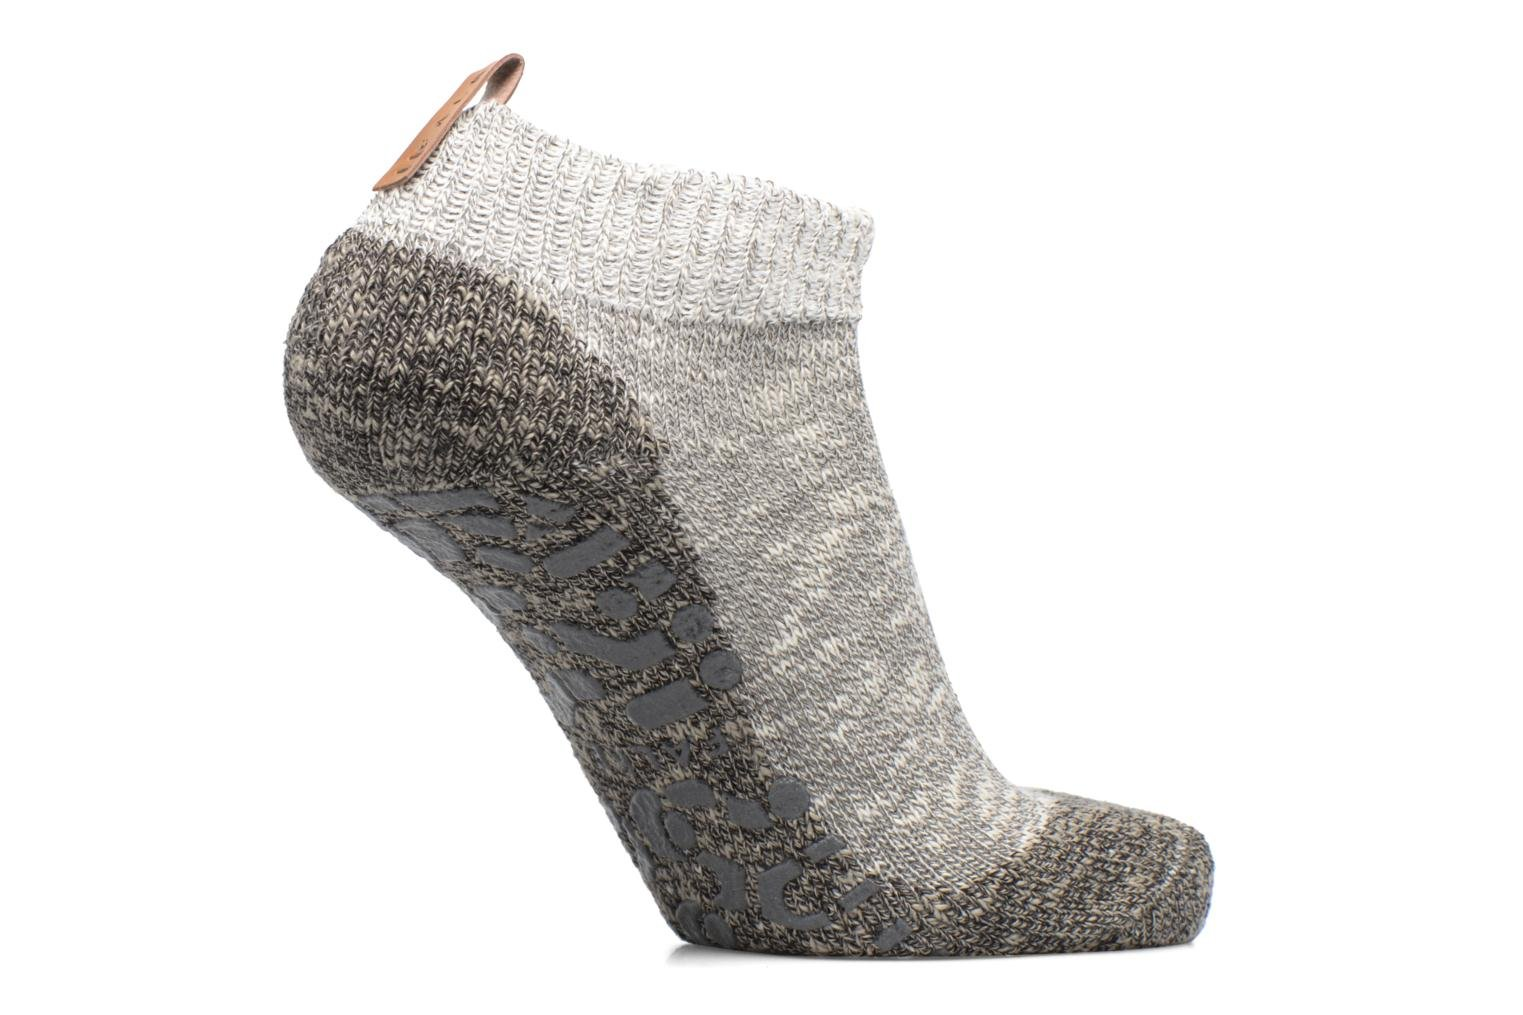 Chaussons-chaussettes Homepads 3390 LIGHT GREYMEL.